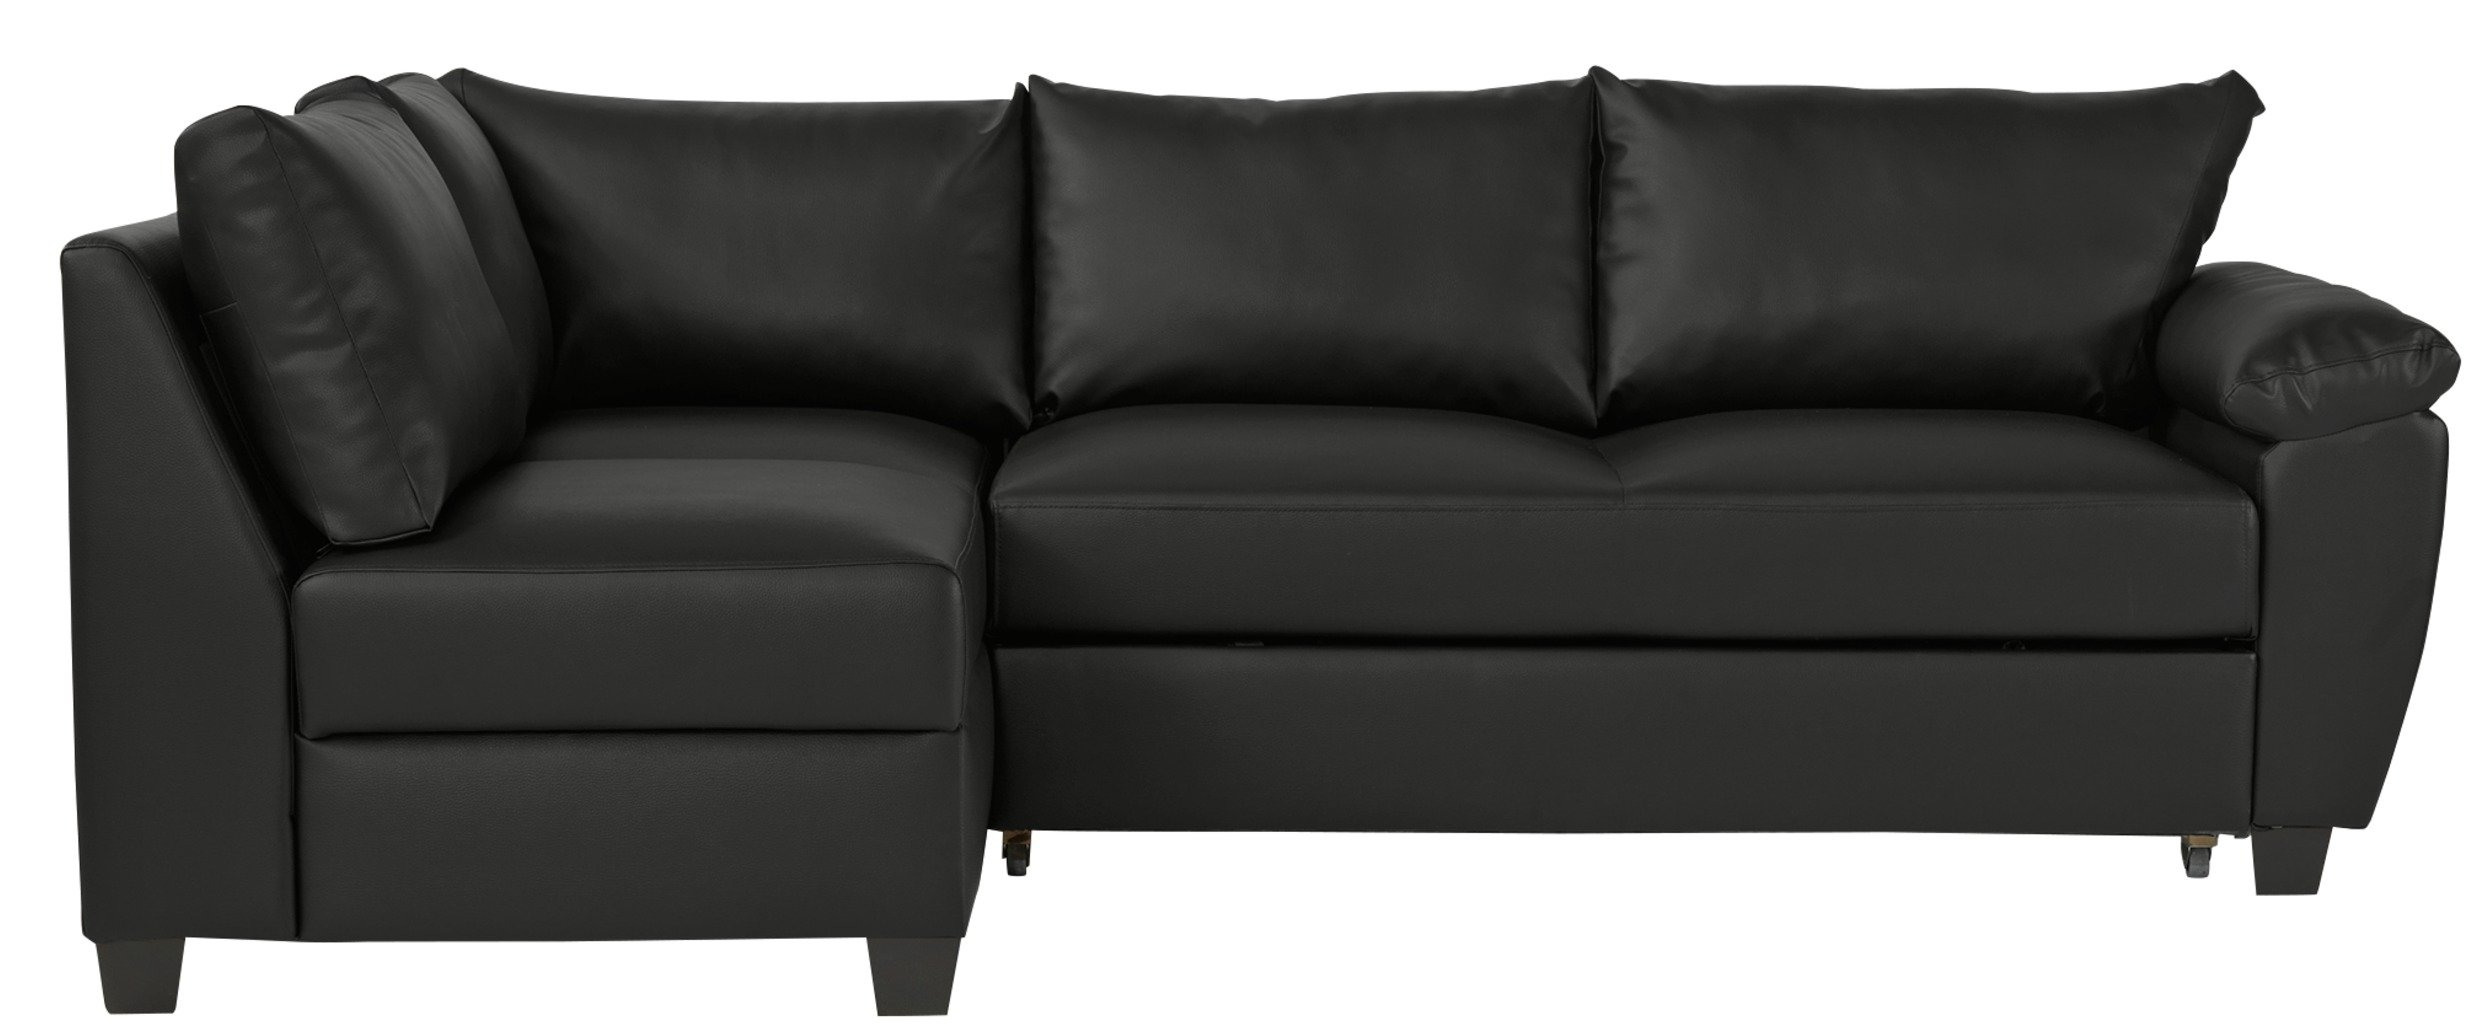 Fine Corner Sofa Black Leather Home Decor 88 Caraccident5 Cool Chair Designs And Ideas Caraccident5Info